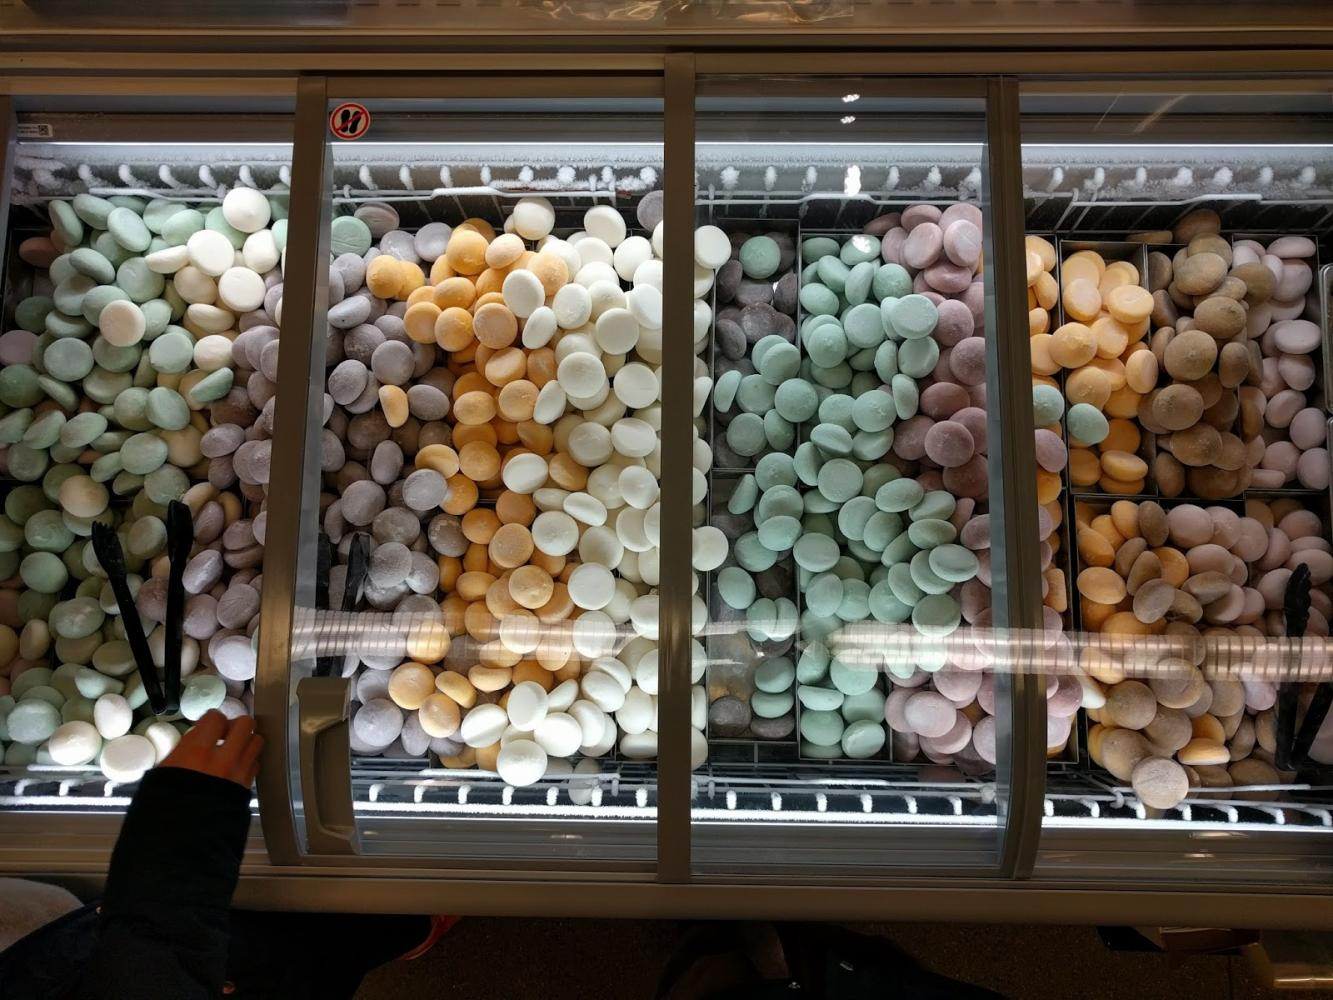 There are 12 different flavors for the ice cream mochi